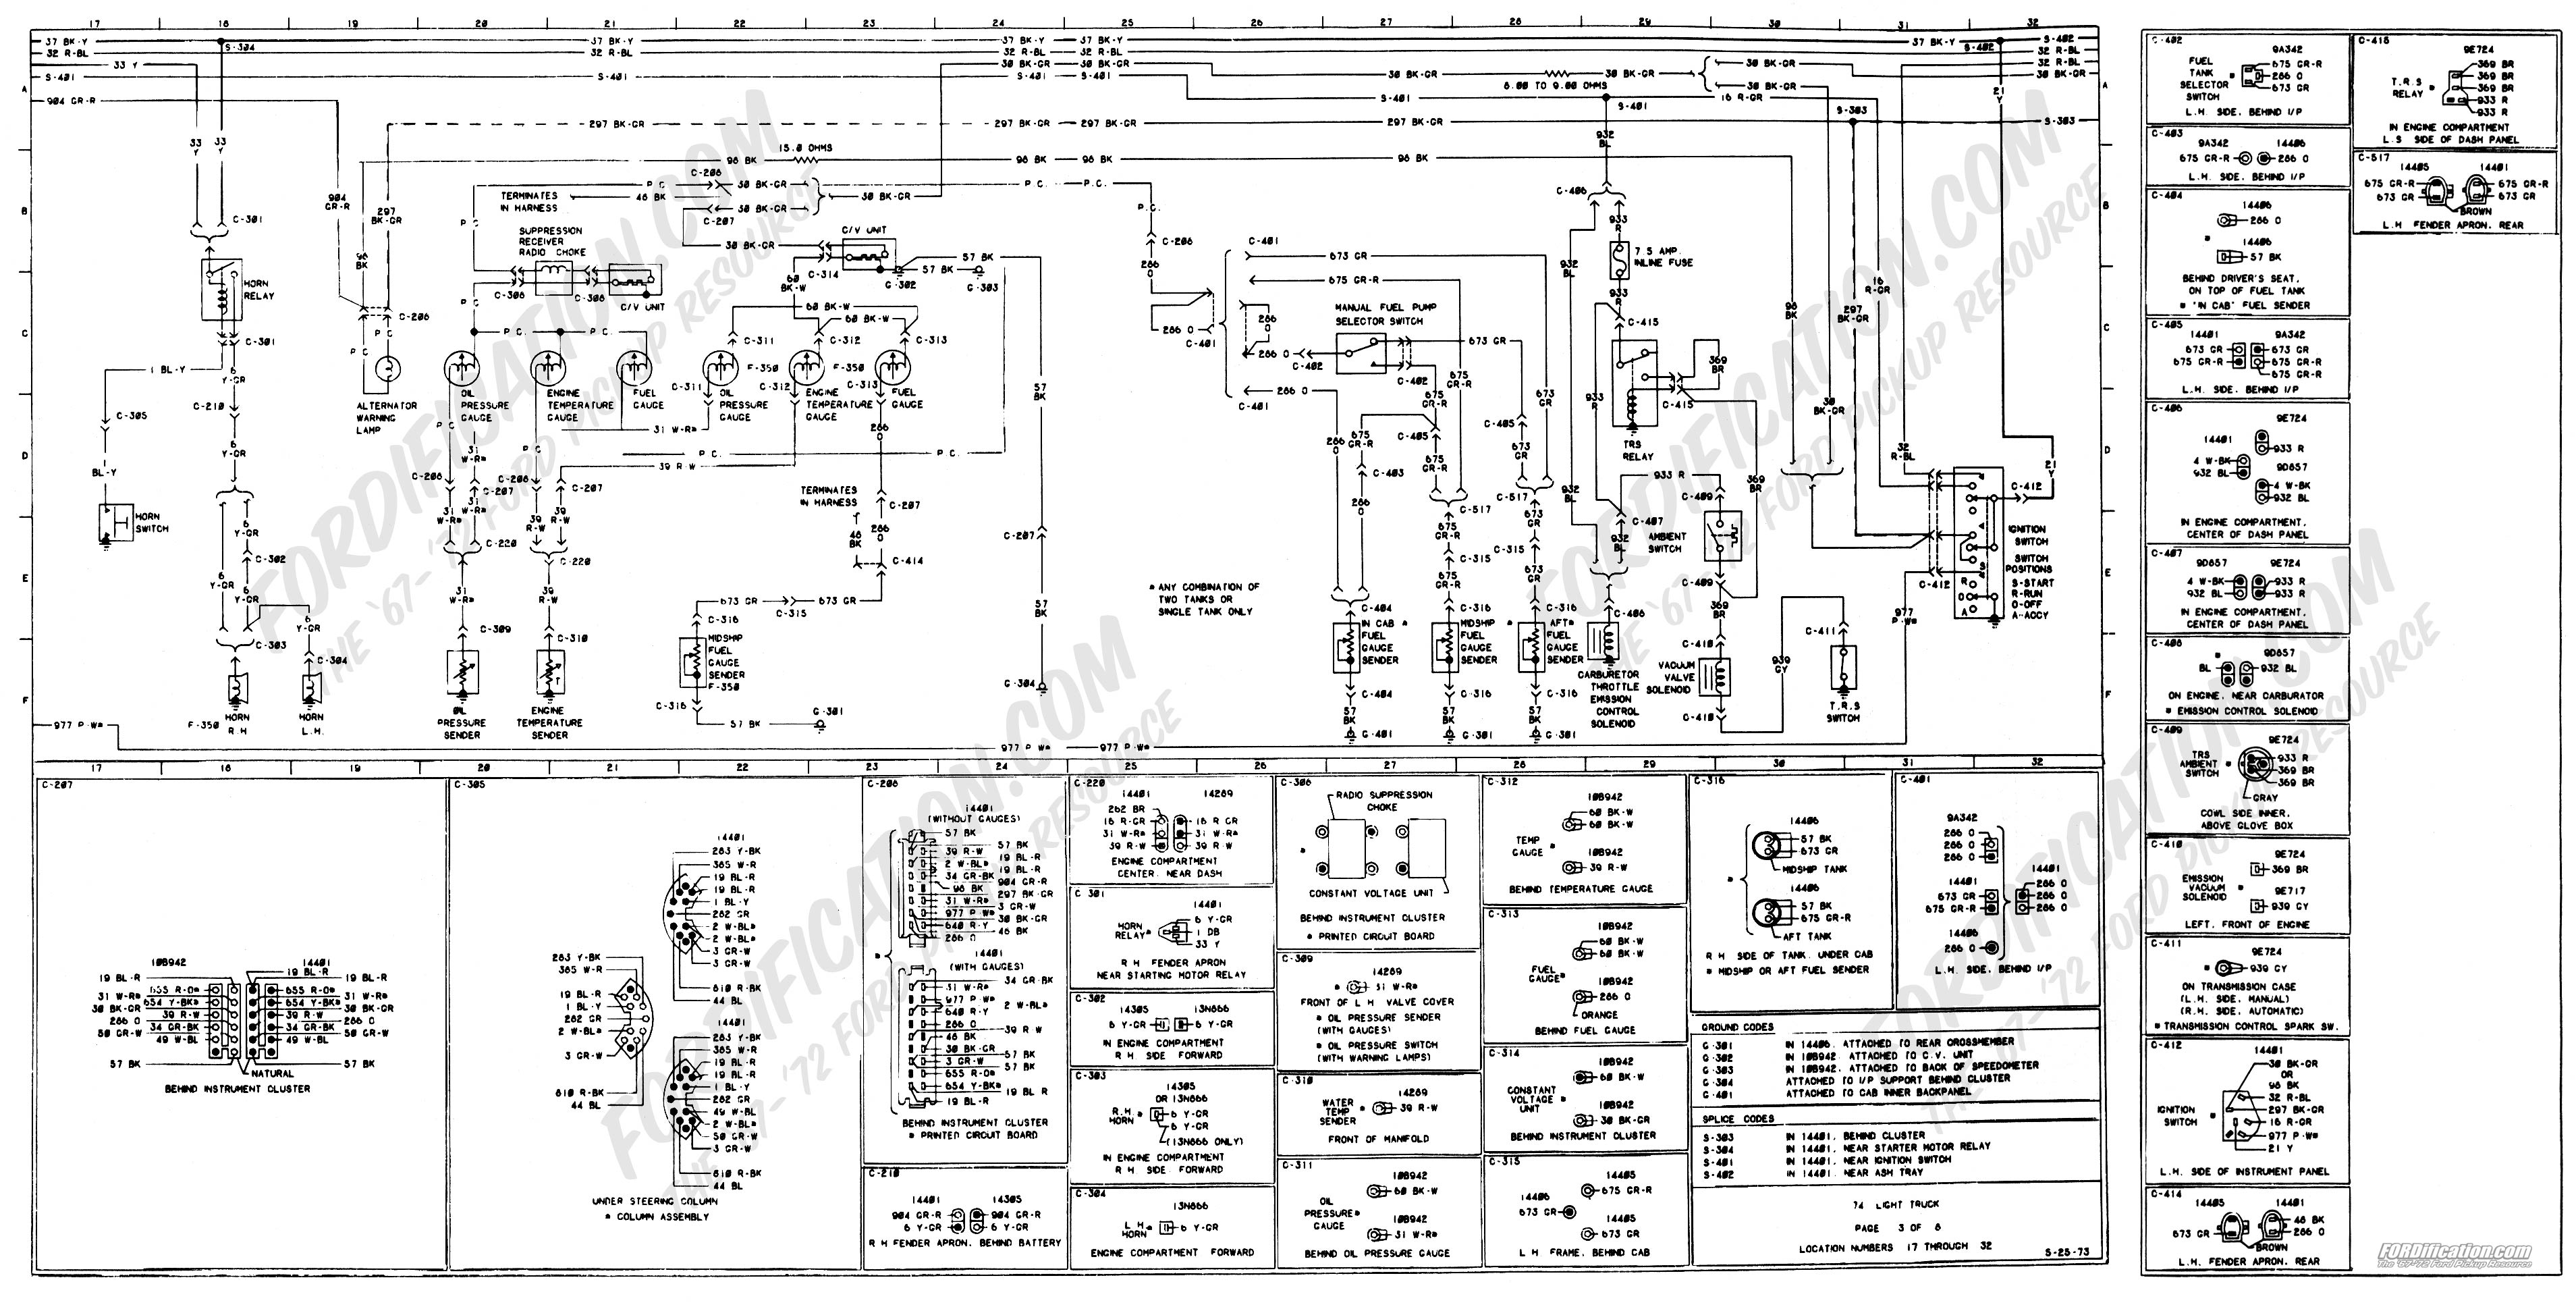 2500 Wiring Diagram On Toyota Land Cruiser Turn Signal F250 Opinions About 1973 1979 Ford Truck Diagrams Schematics Fordification Net Rh For Trailer Plug 2005